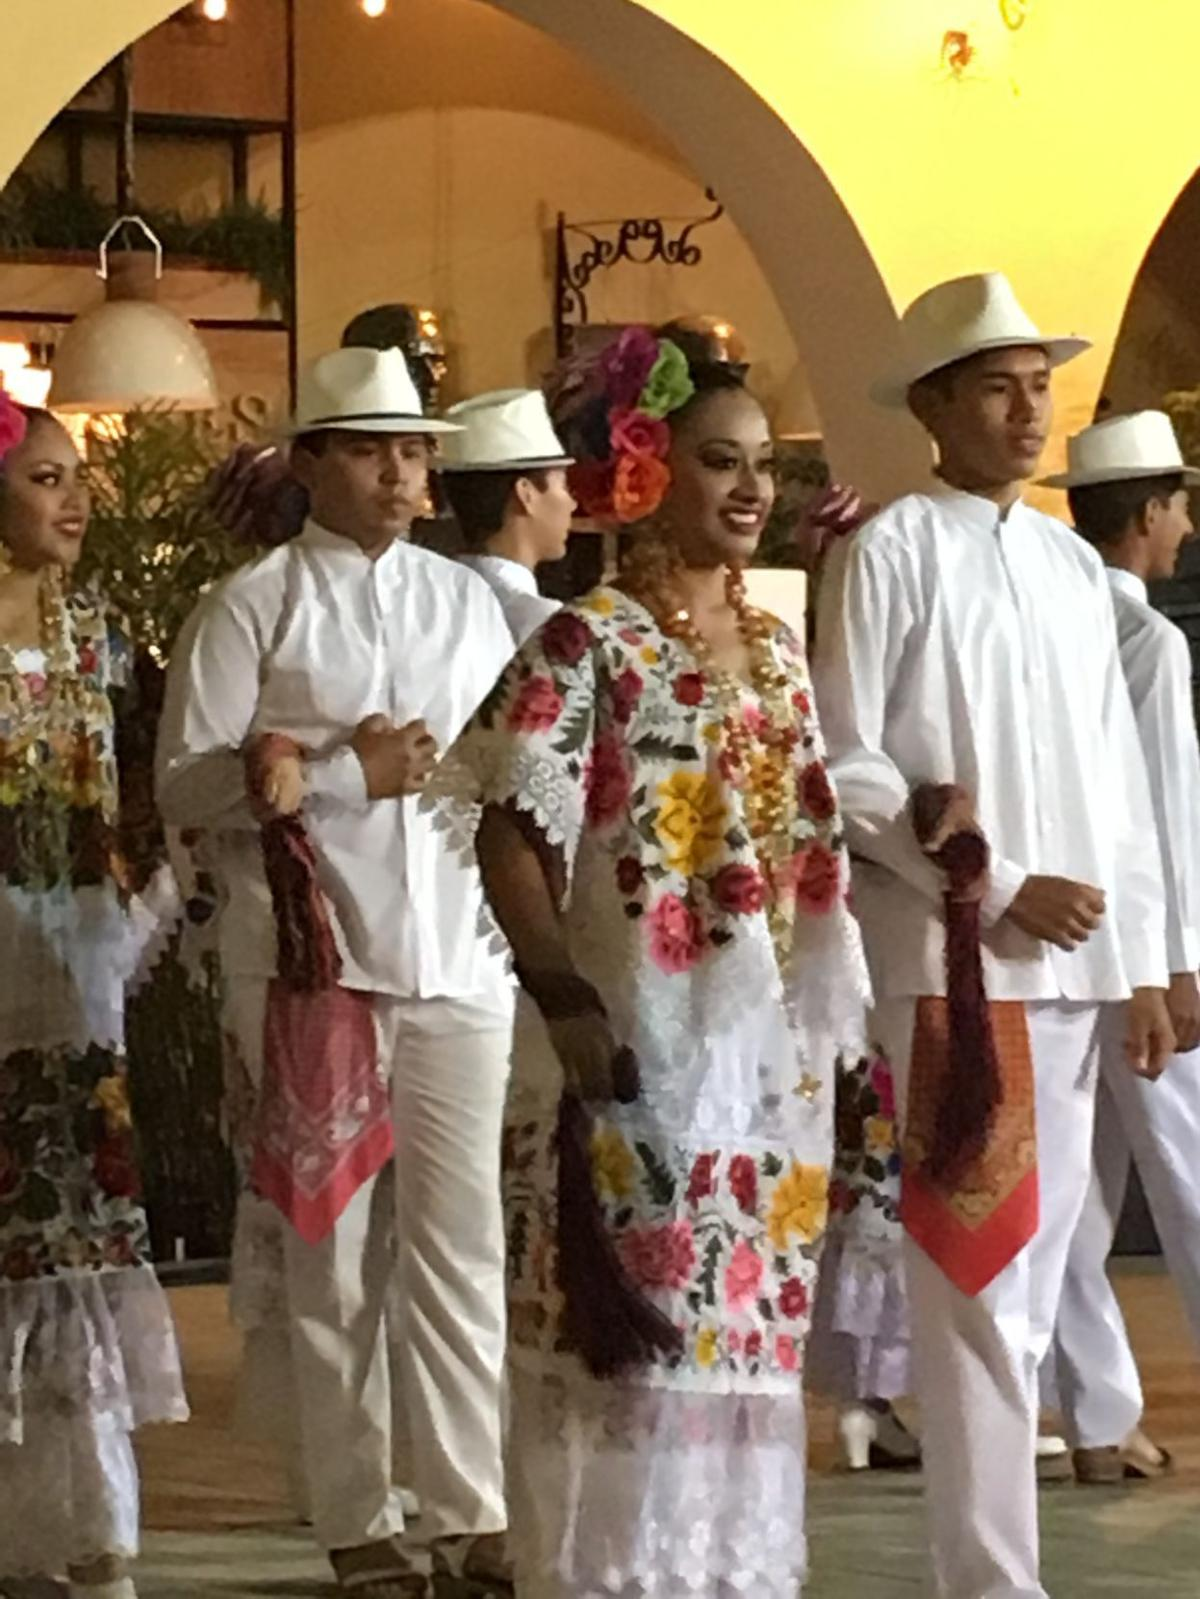 Mérida: A colonial city on the Yucatan has deep roots in